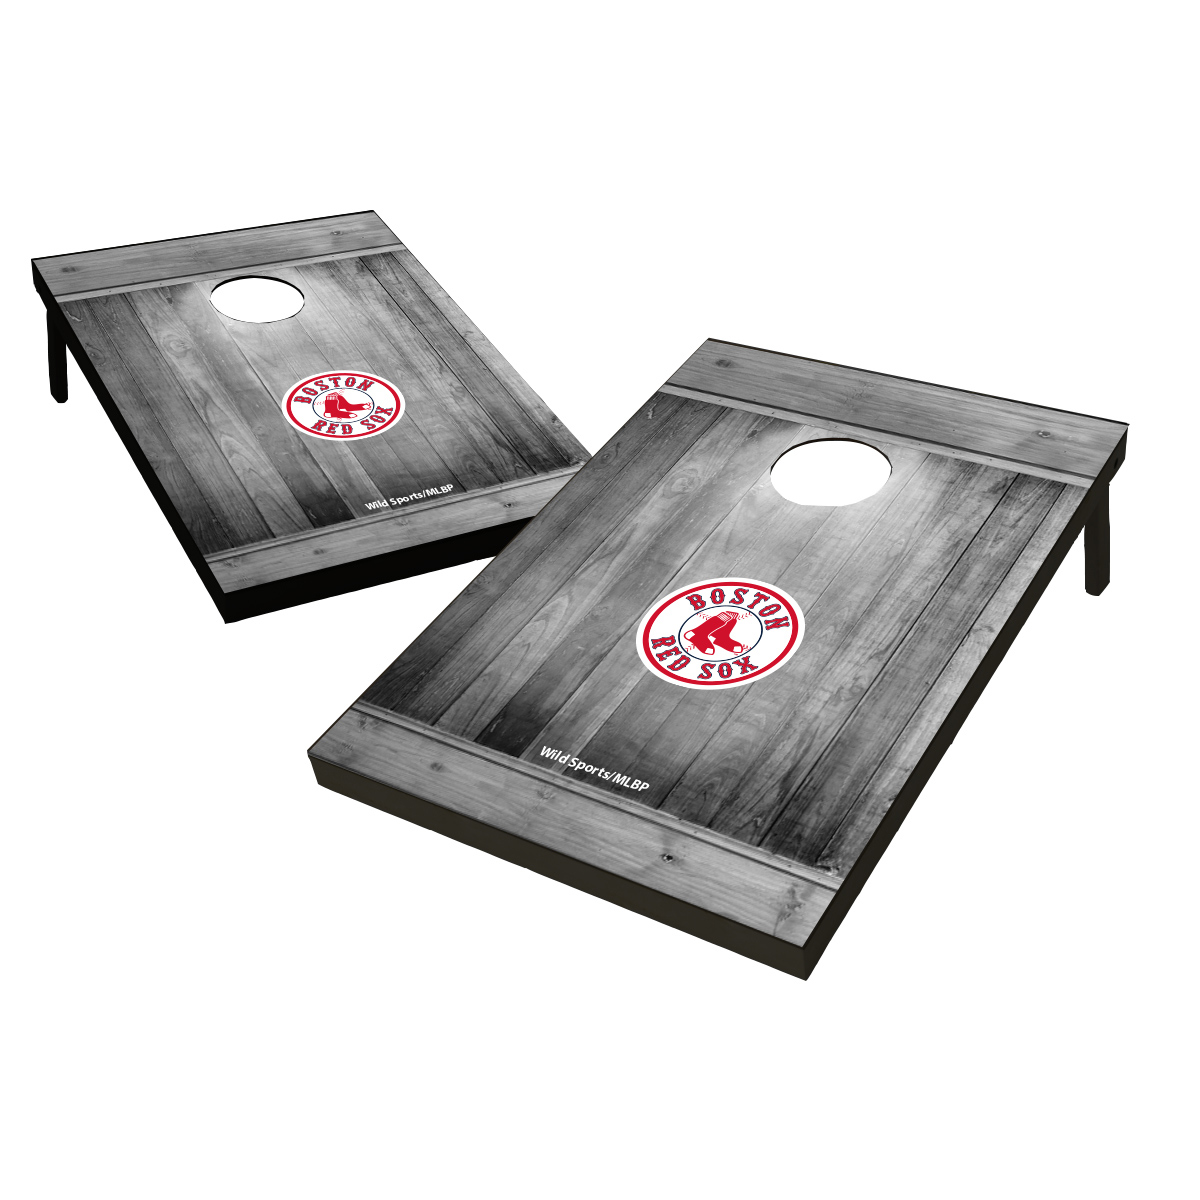 Tailgate Toss Wood MLB Boston Red Sox